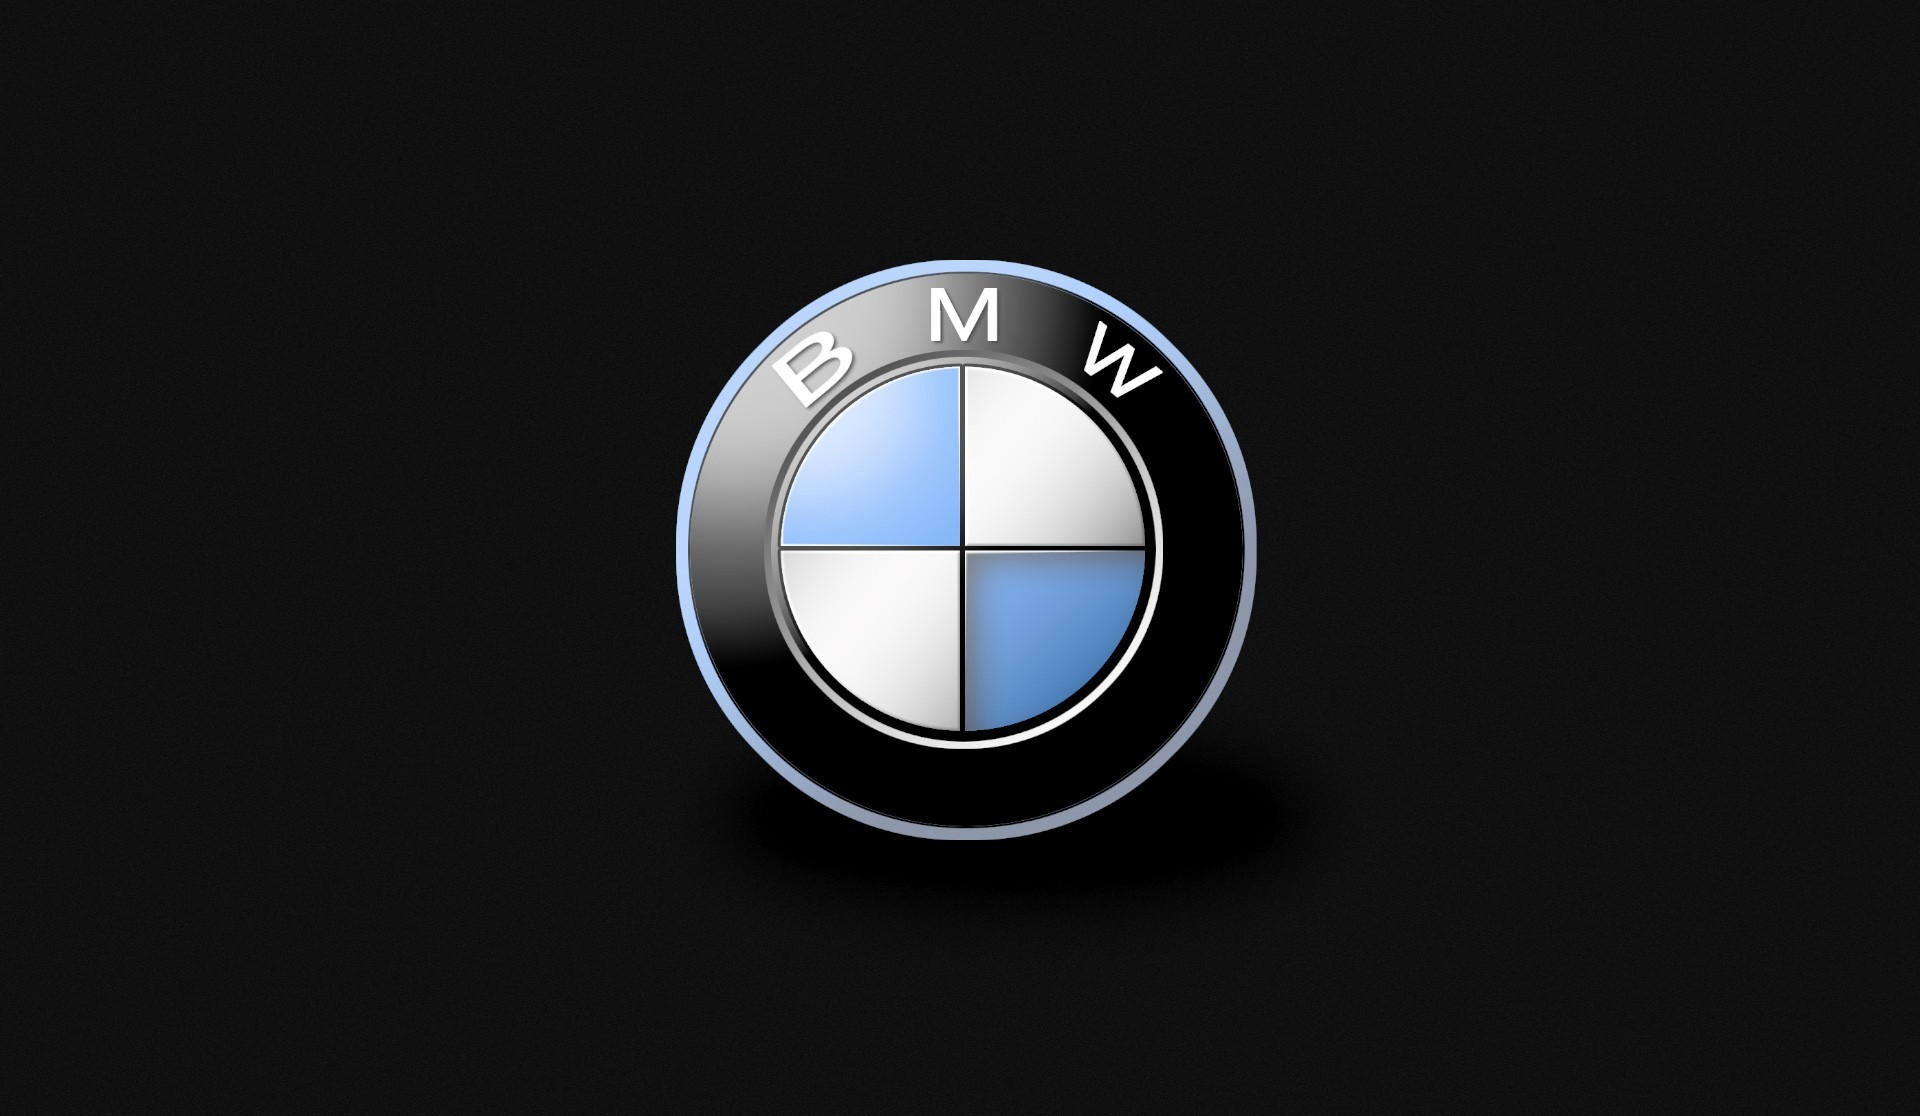 1920x1116 BMW Brand Cars Full HD Black Desktop Logo Wallpapers